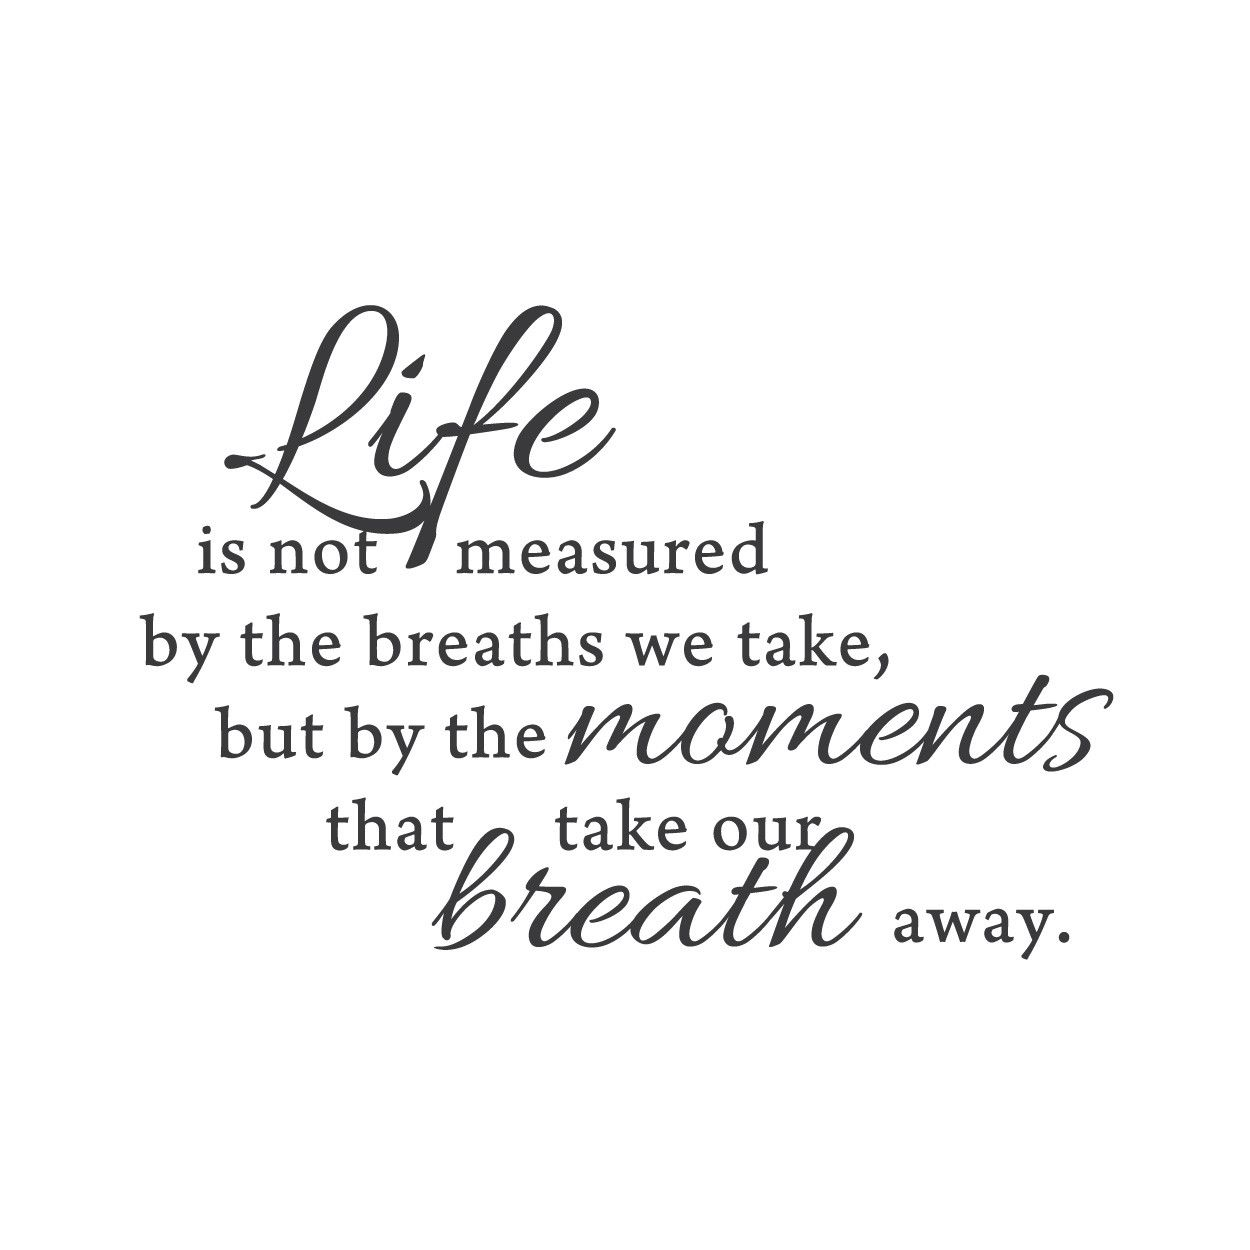 Wall Quotes Wall Decals Moments That Take Our Breath Away